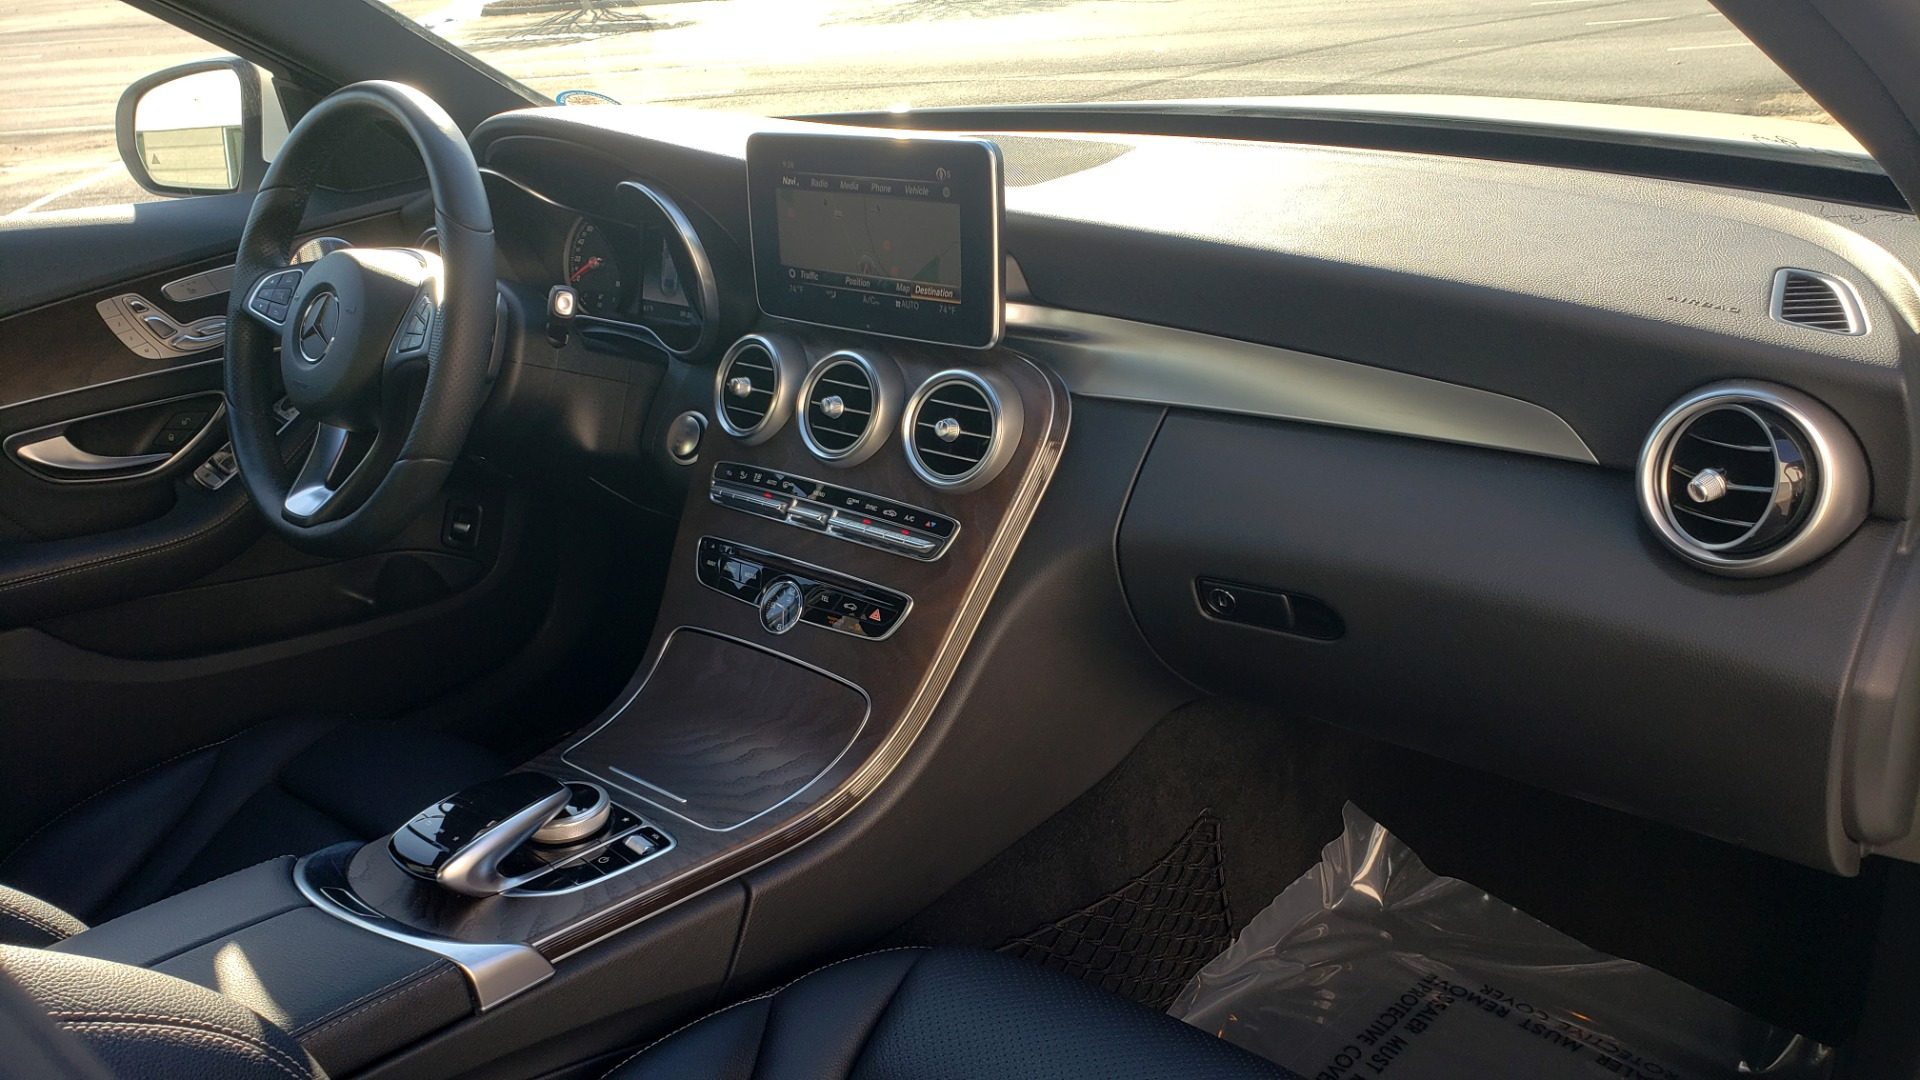 Used 2018 Mercedes-Benz C-Class C 300 PREMIUM / NAV / PANO-ROOF / AMG LINE / MULTIMEDIA for sale $28,235 at Formula Imports in Charlotte NC 28227 65